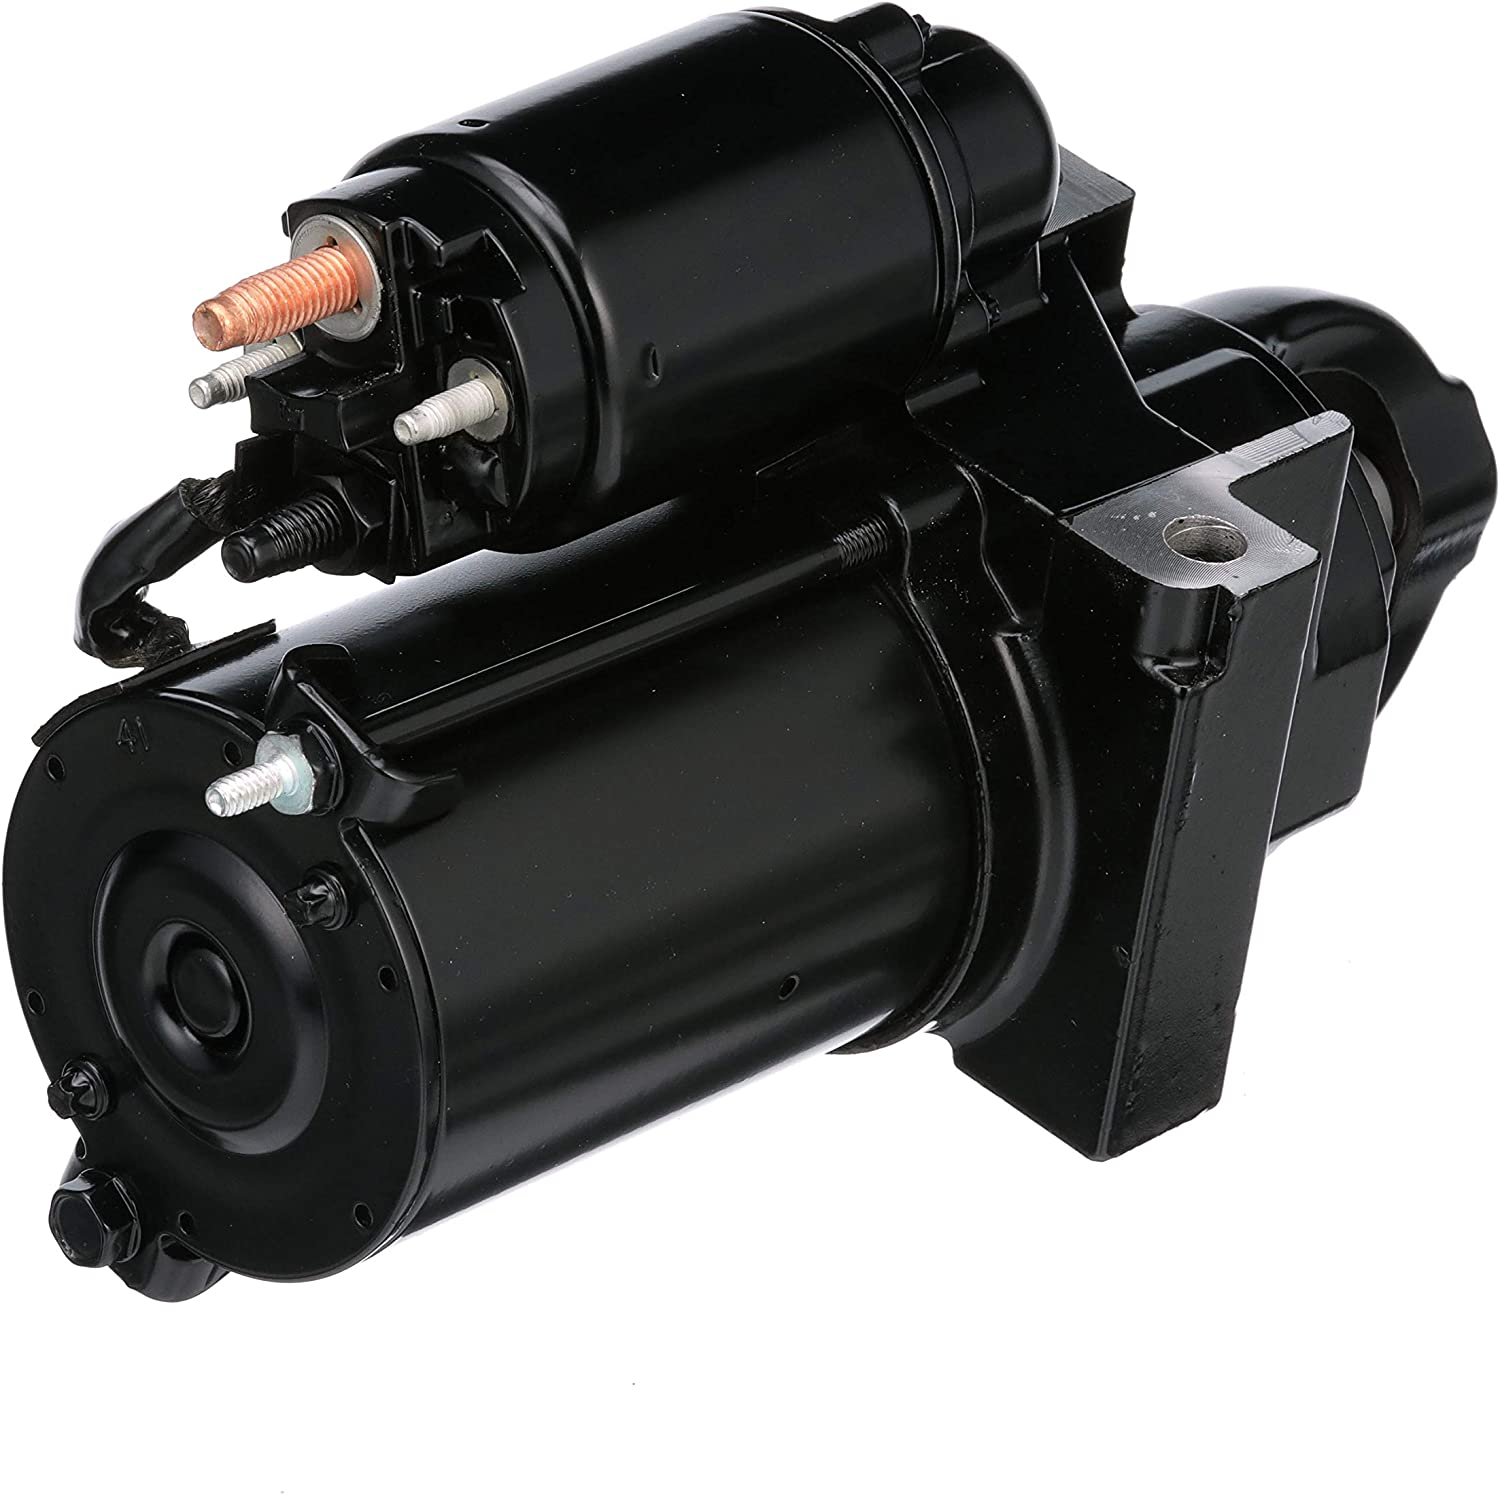 Quicksilver Starter Motor 1 year warranty High material Assembly 863007A1 V-6 - -For Delco and